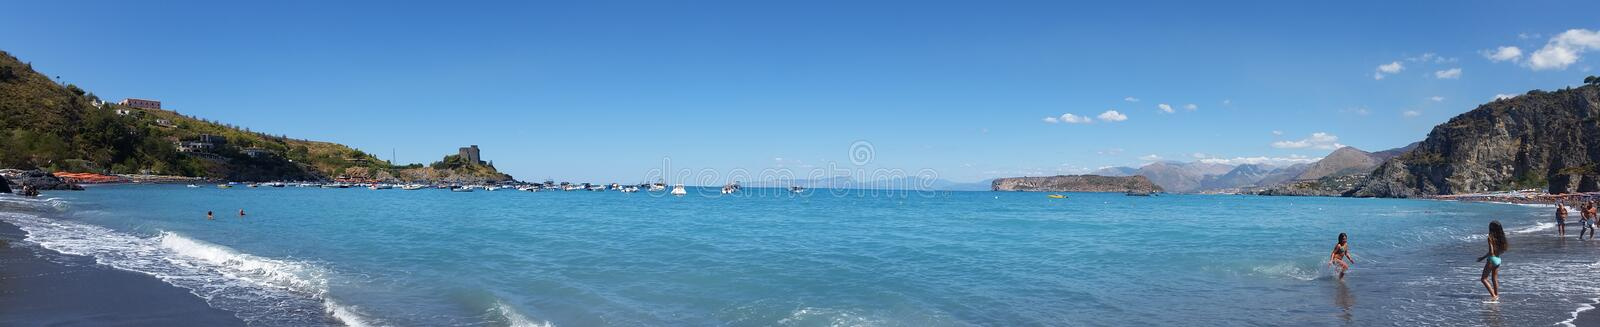 Sea of Calabria royalty free stock photography